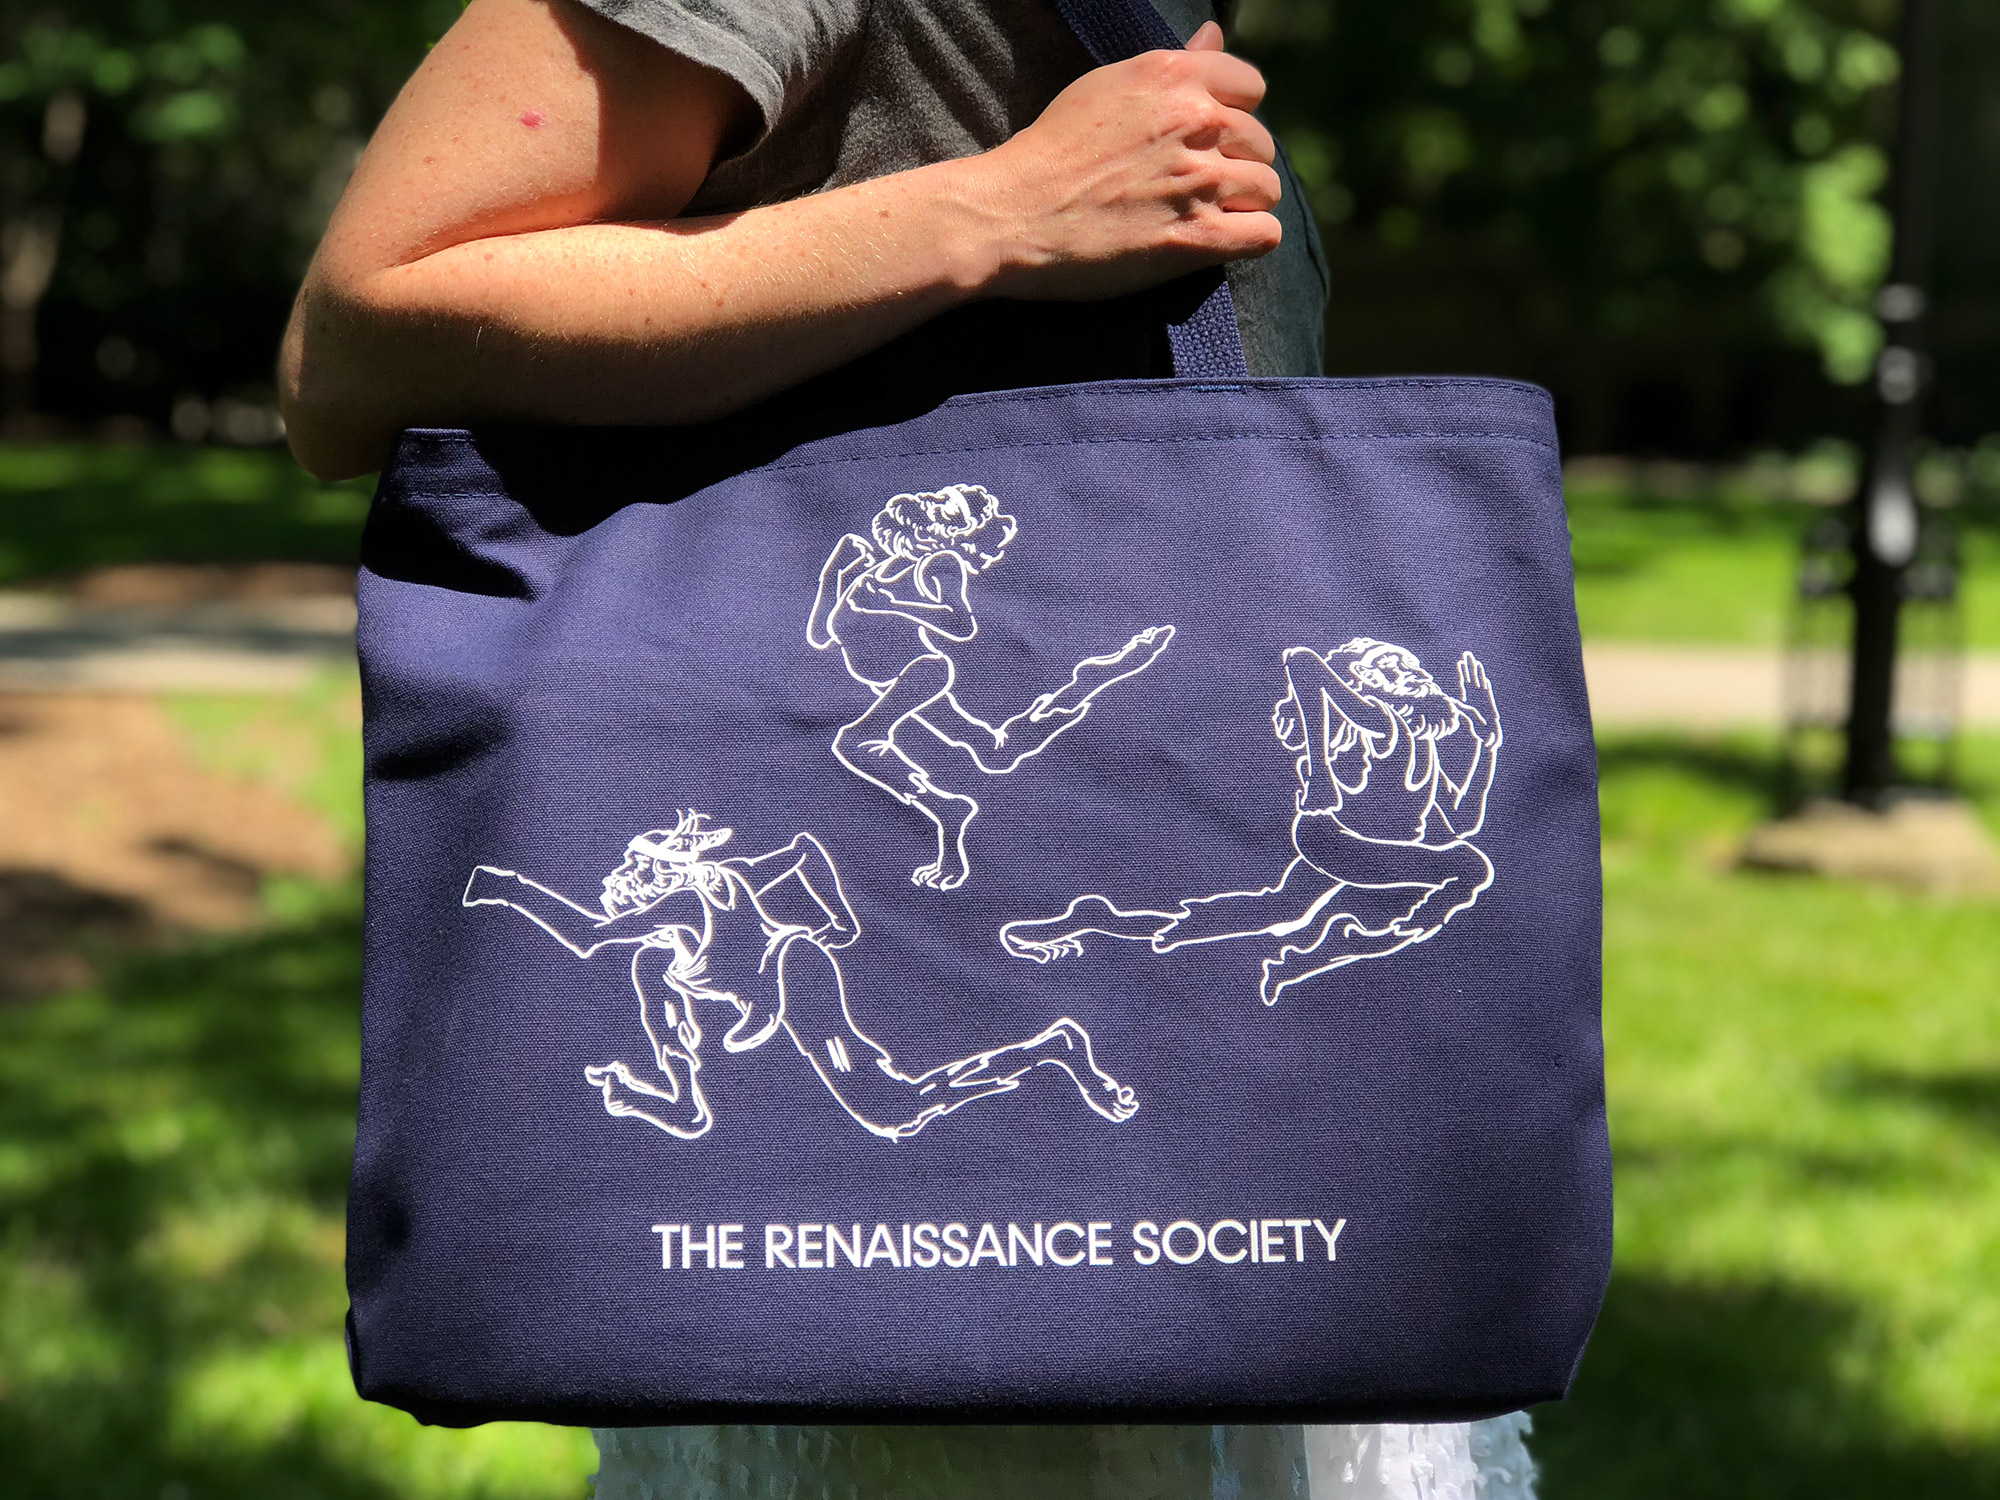 A person holds a dark blue tote bag with white print.